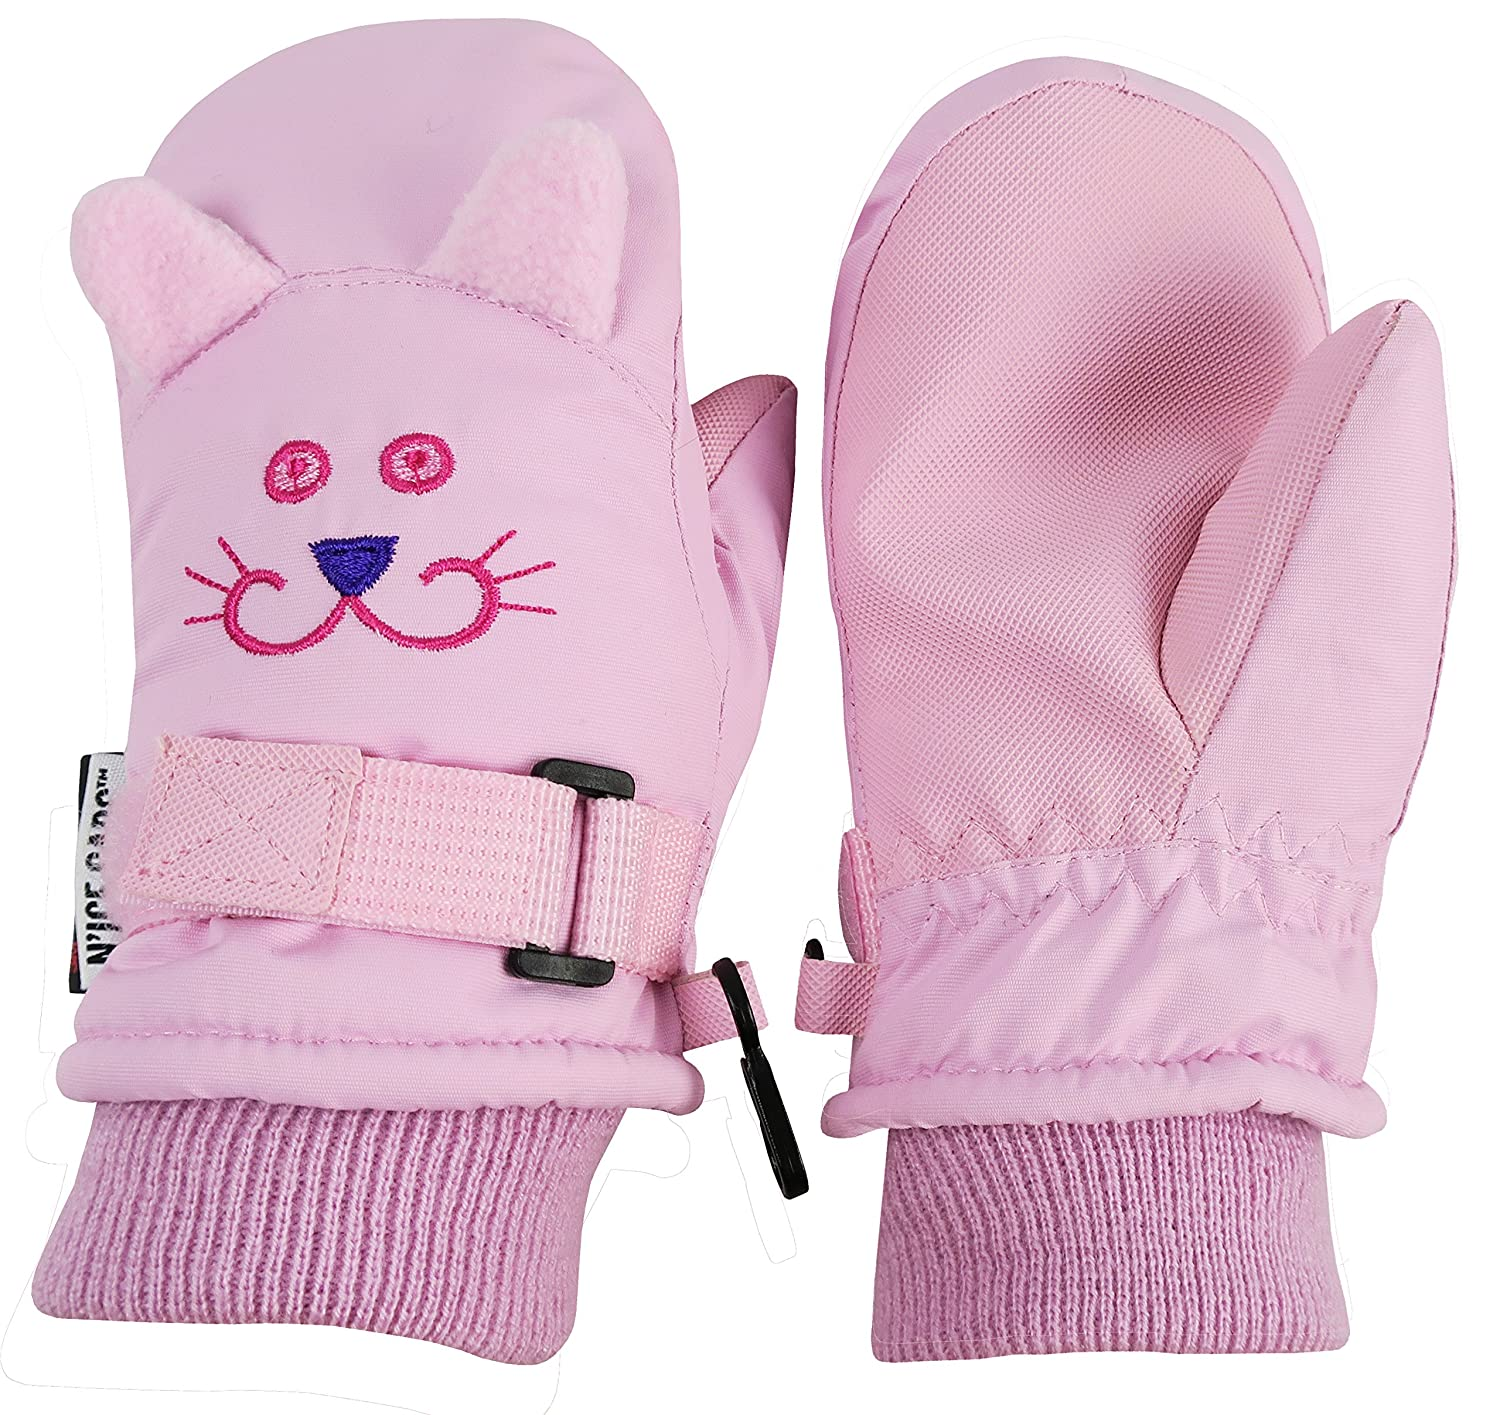 N'Ice Caps Little Girls and Baby Cute Animal Faces Waterproof Winter Mittens 4978-G